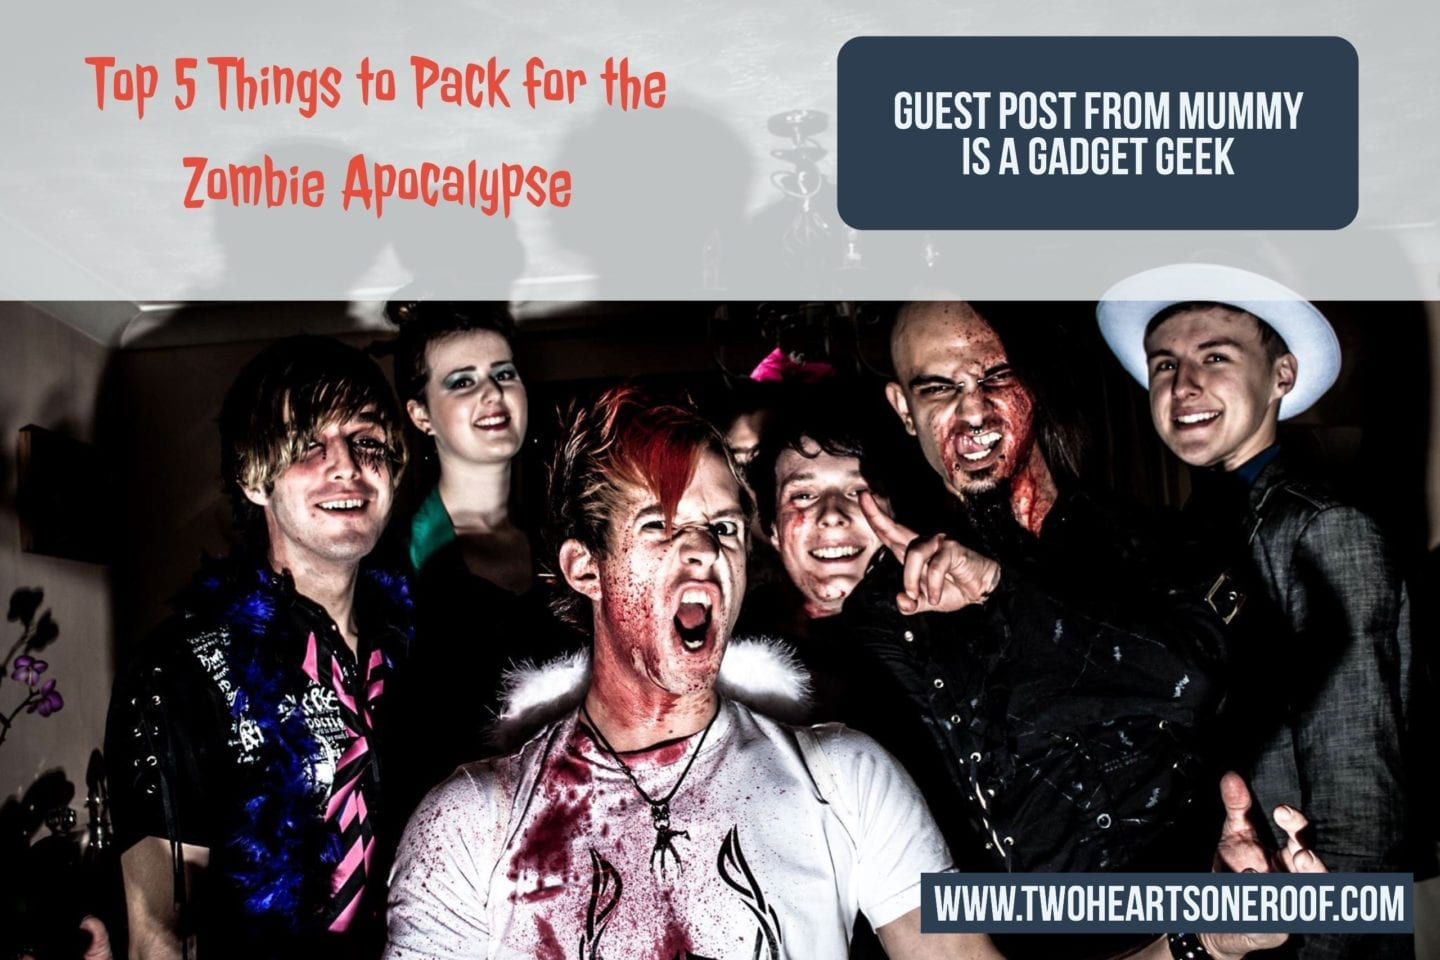 Guest Post from Mummy is a Gadget Geek – Top 5 Things to Pack for the Zombie Apocalypse